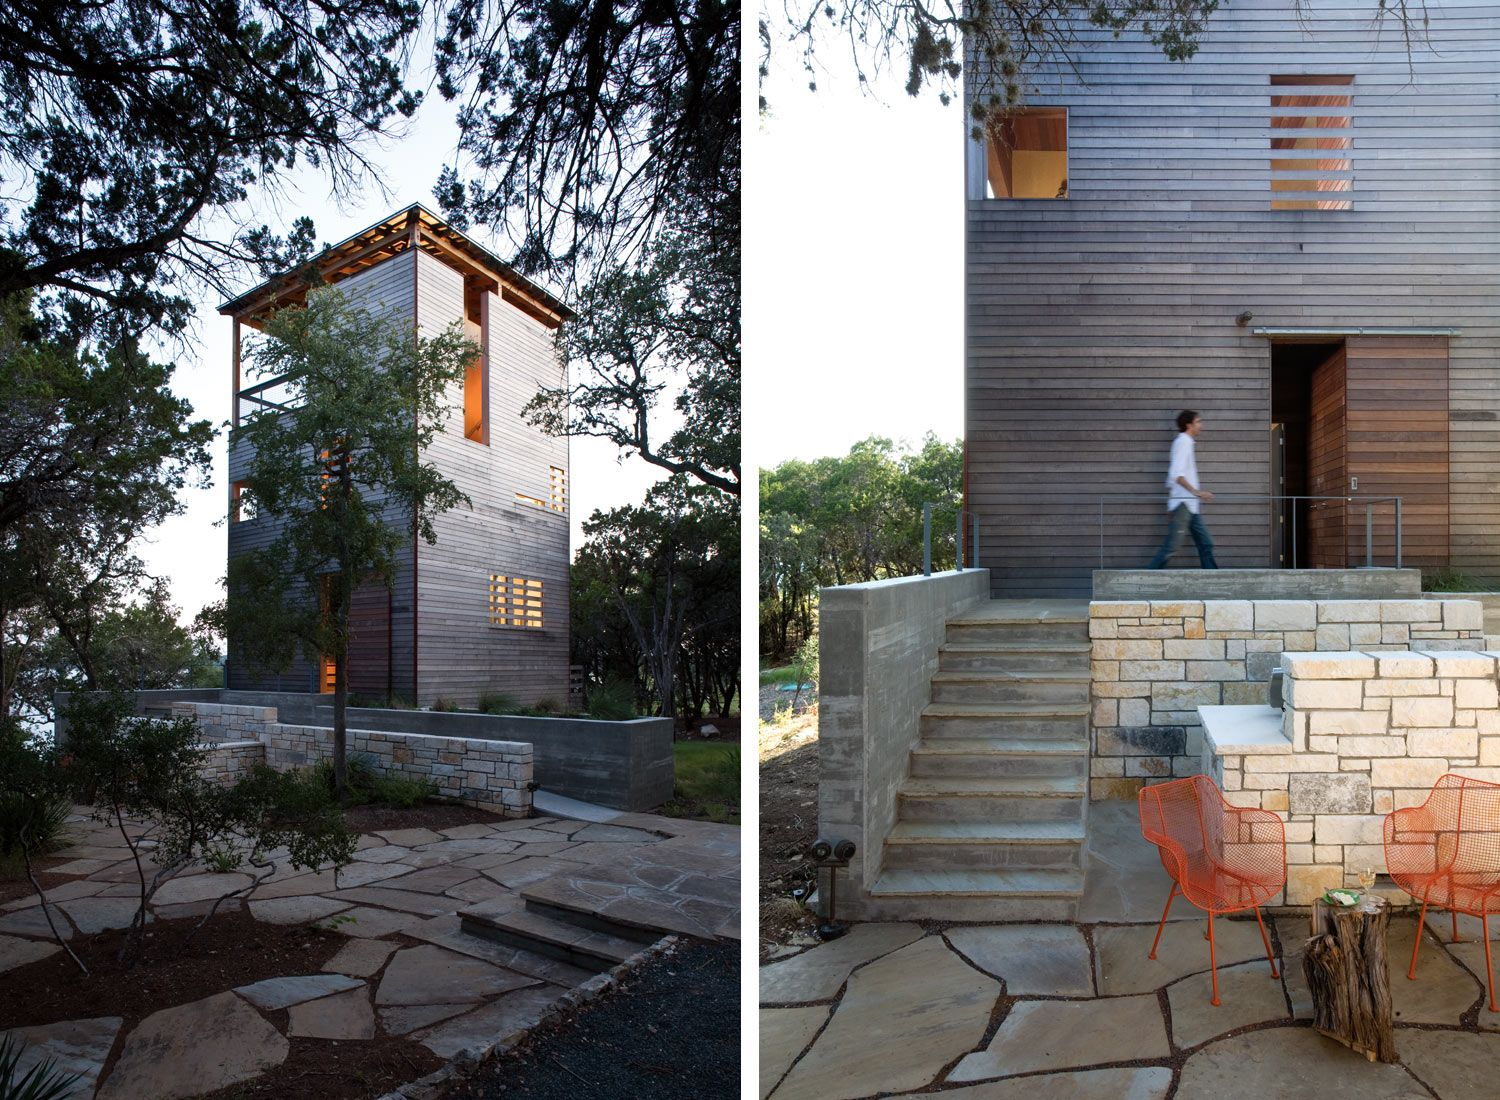 towerhouse : anderssonwise architect